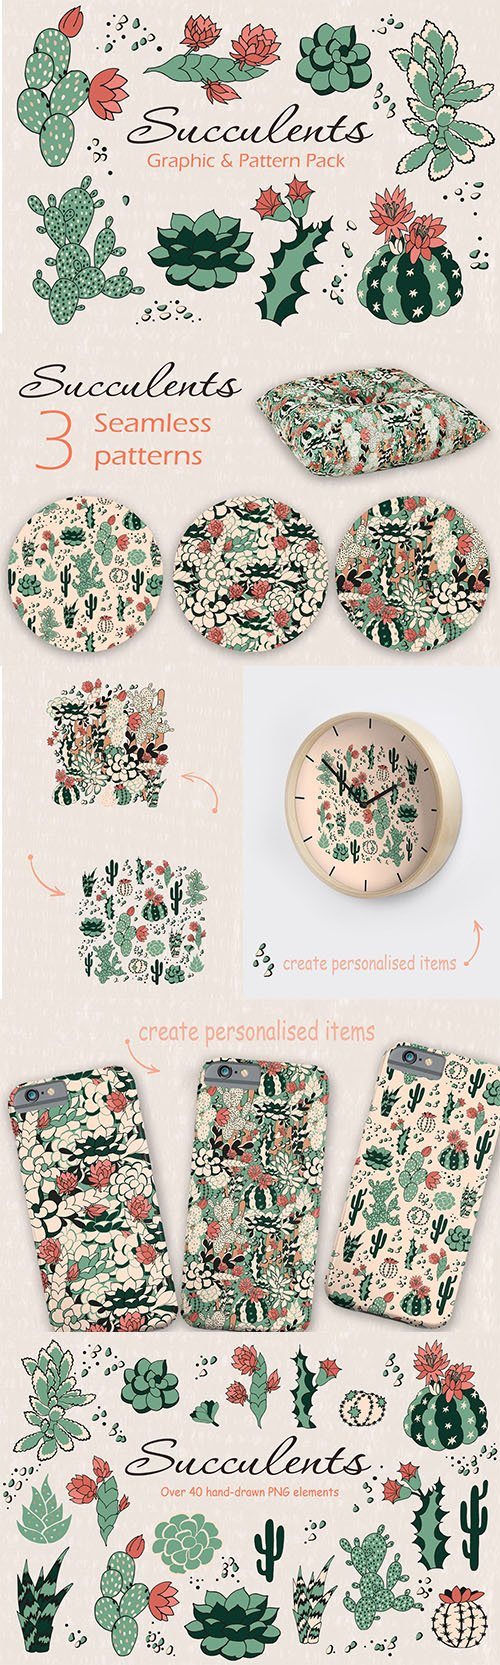 Succulents Graphic and Pattern Pack